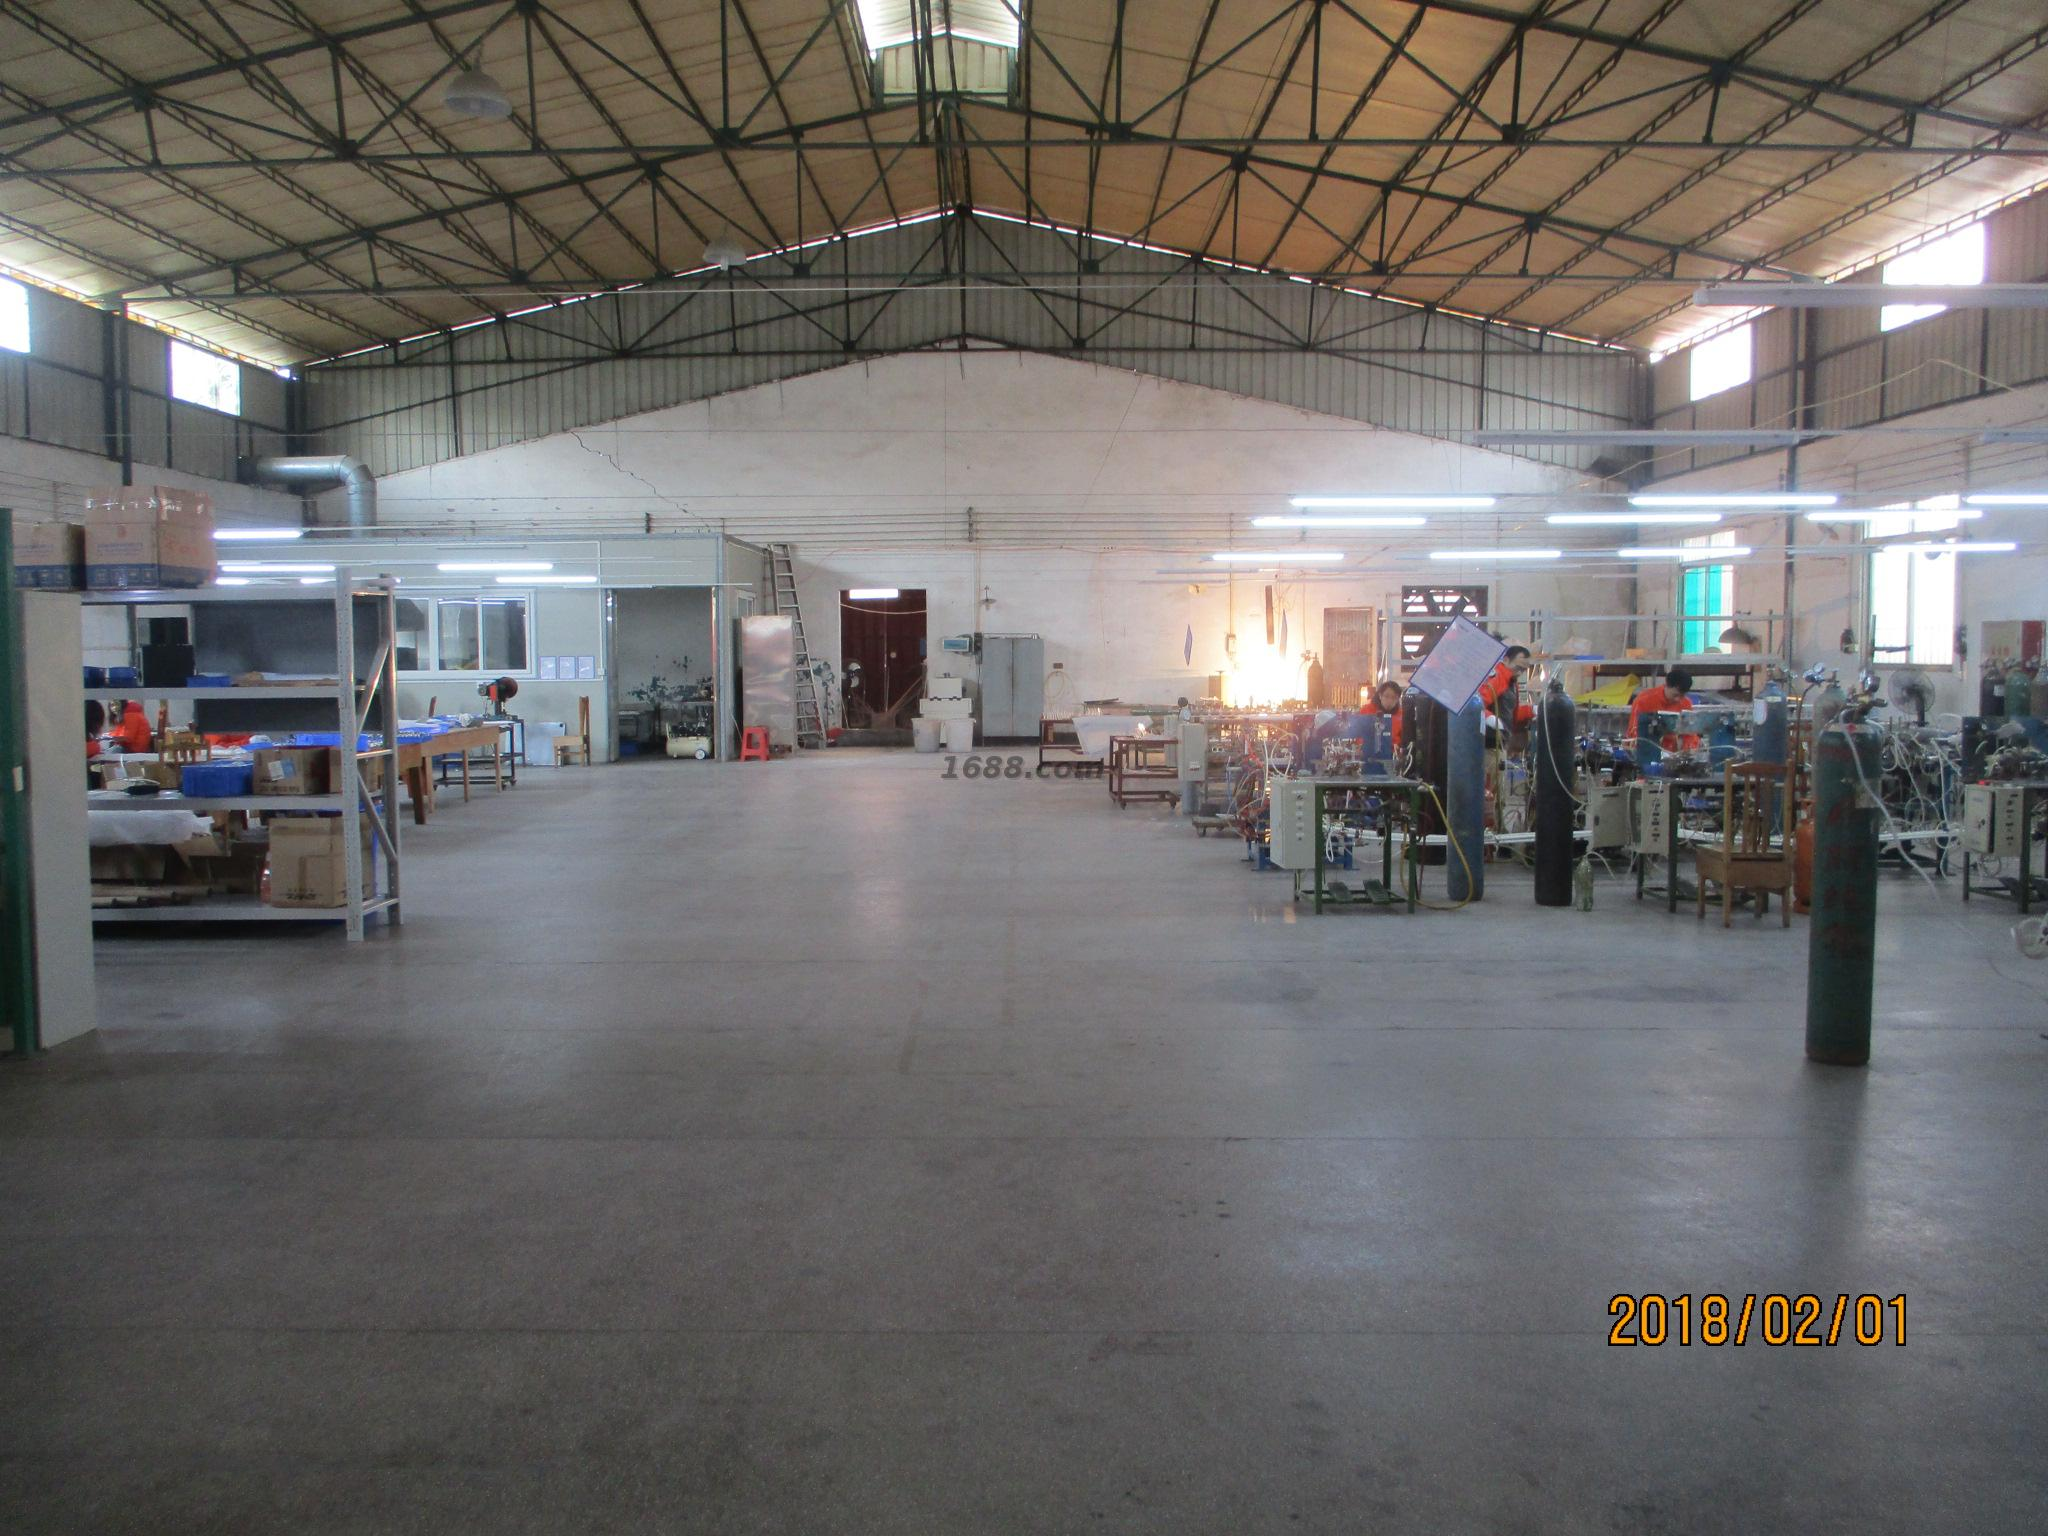 quartz infrared heating lamp factory